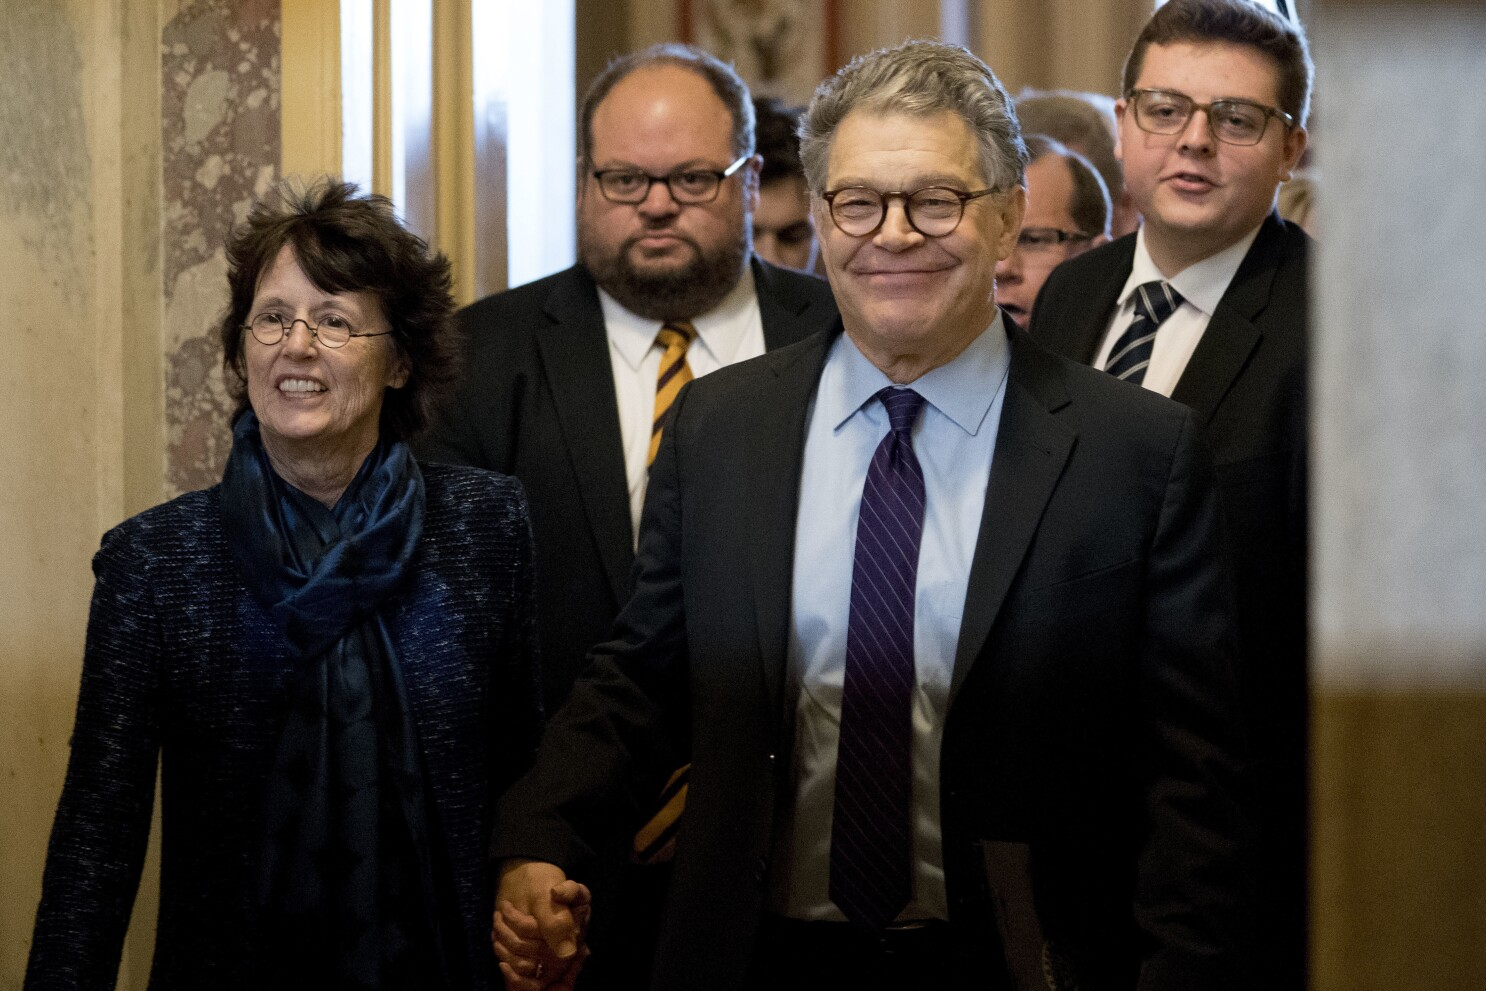 Al Franken says he regrets resigning from Senate